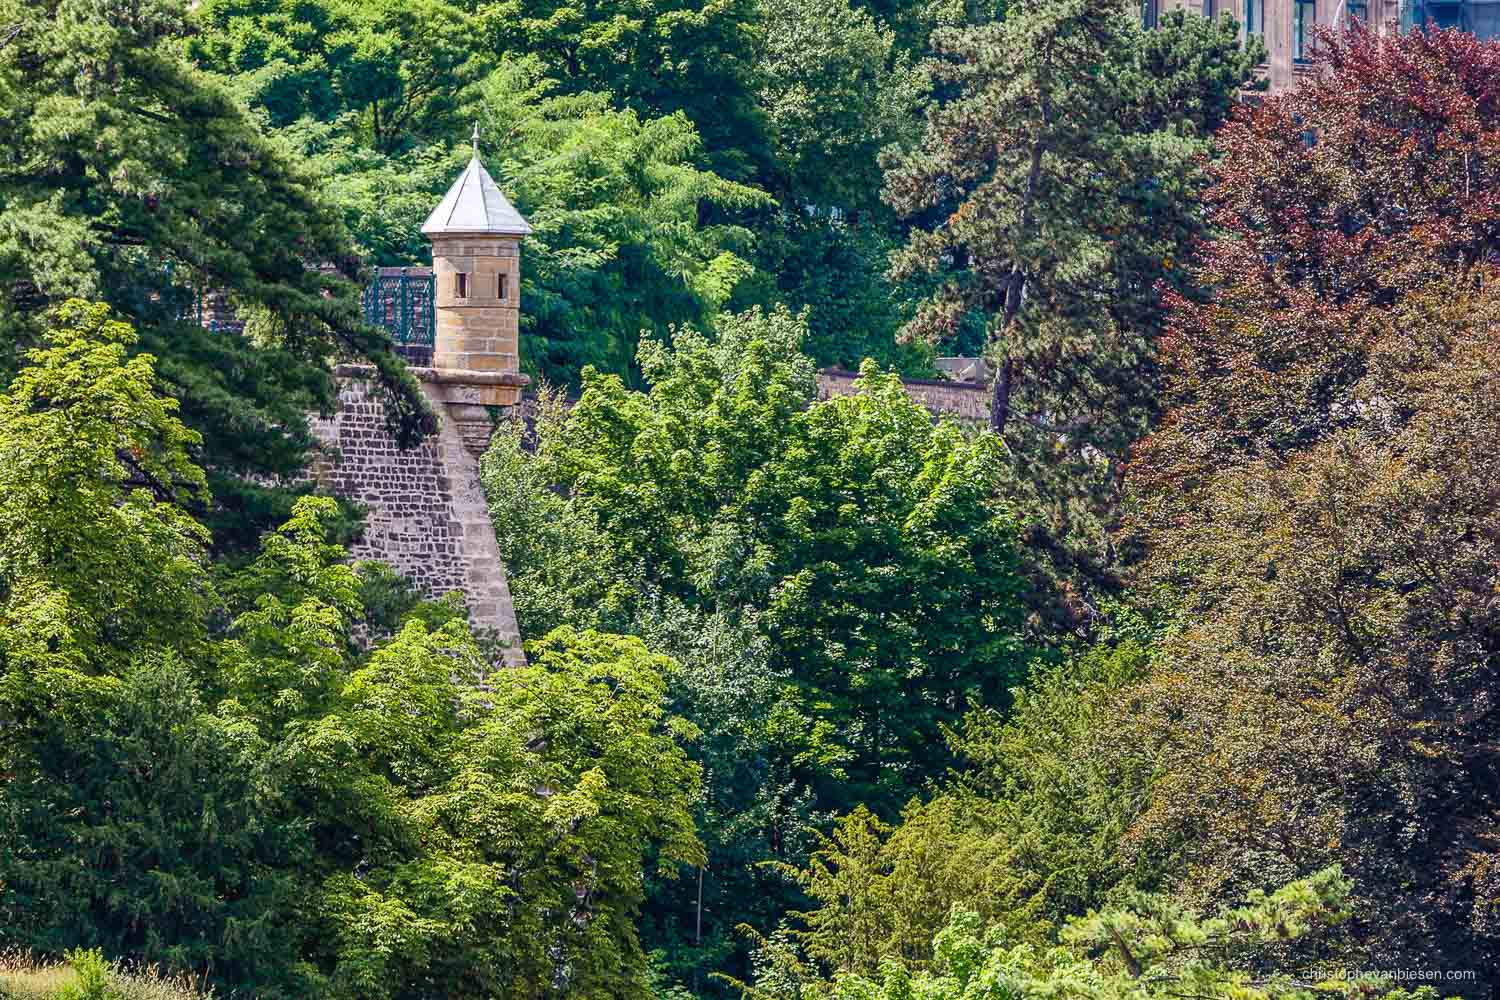 Summer in Luxembourg - One of Luxembourg City's Spanish Towers peeking out of the surrounding trees - The City's Watchtowers II